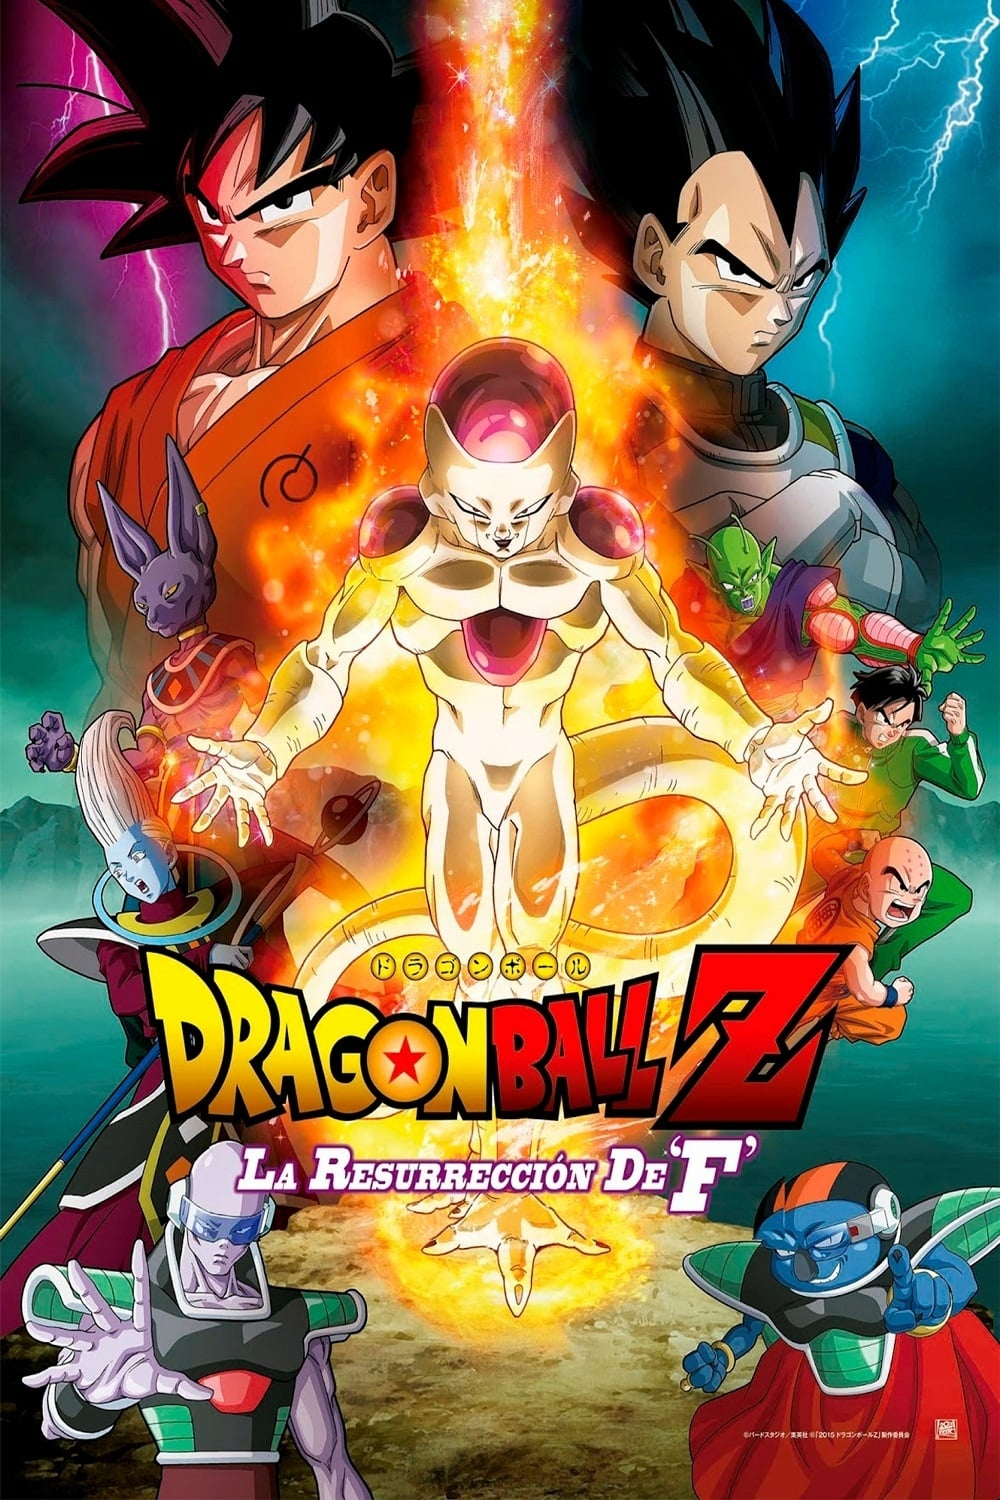 download dragon ball z resurrection f 2015 hd 720p